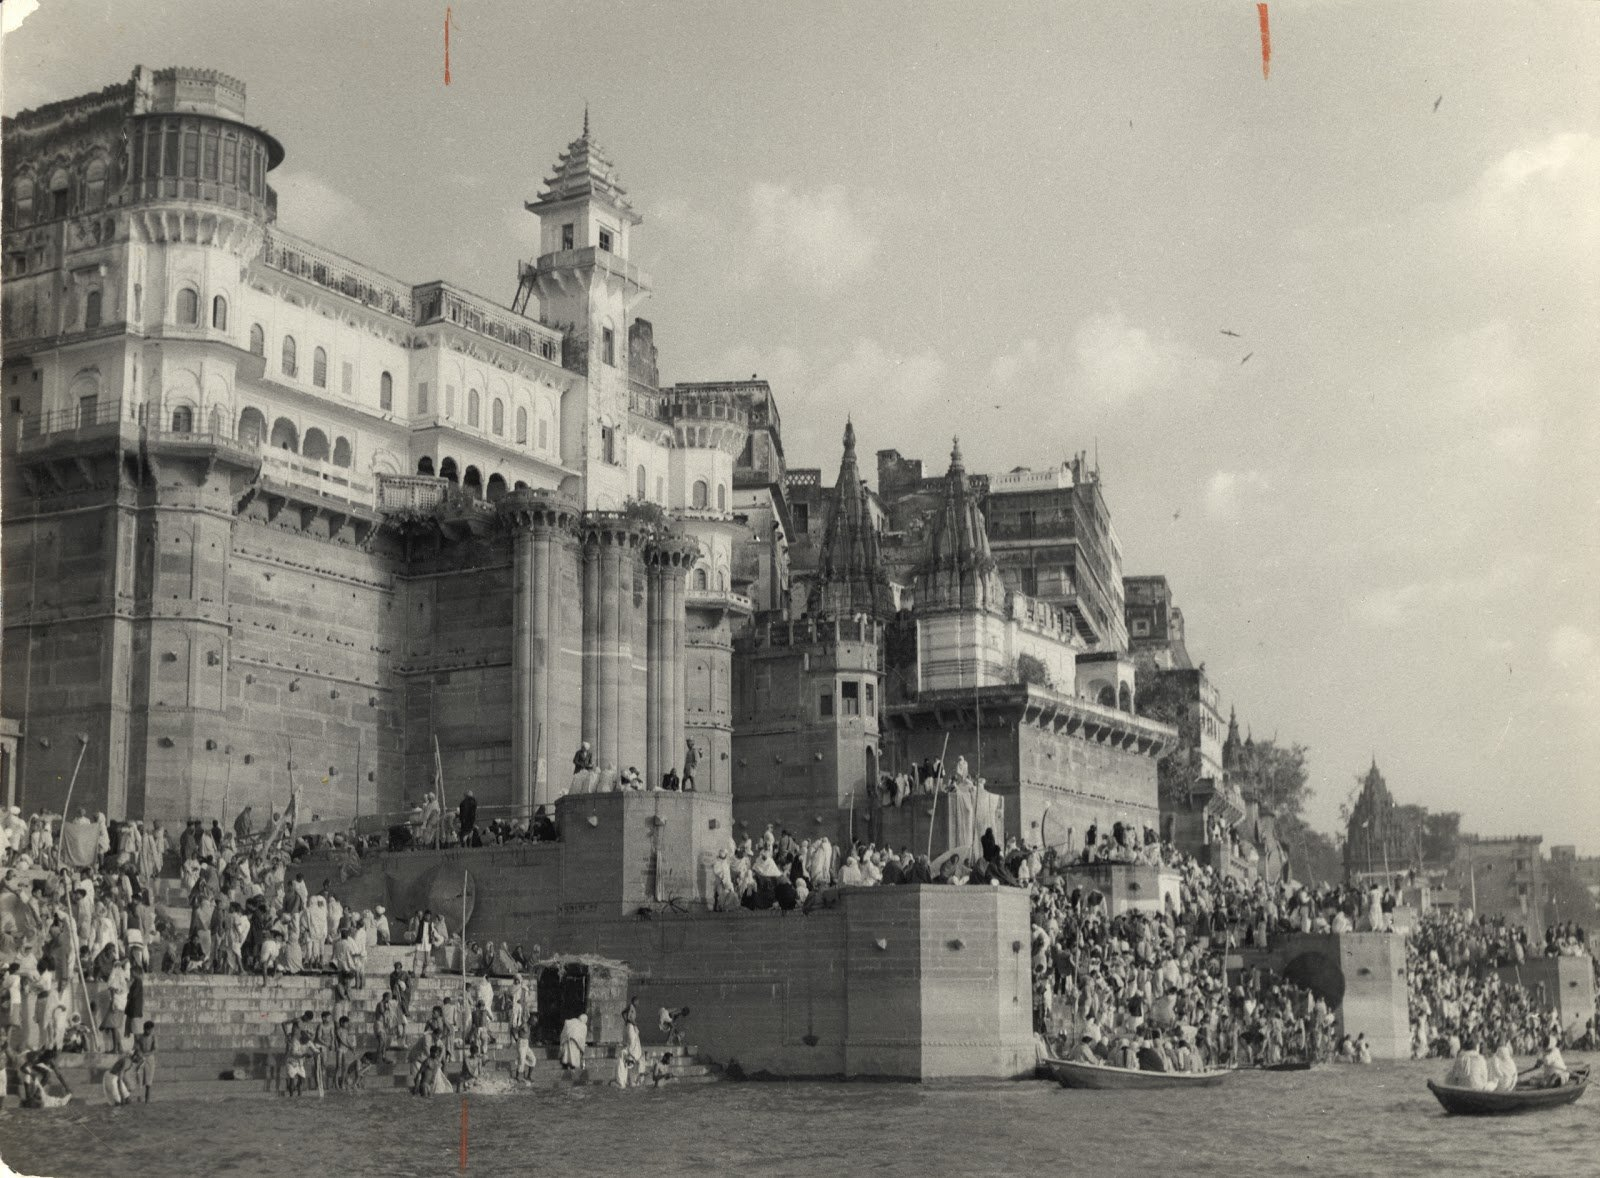 Hindu Pilgrims mass on the ghats on Ganges River at Banaras (Varanasi) under walls of palace during a festival - c1940-50's